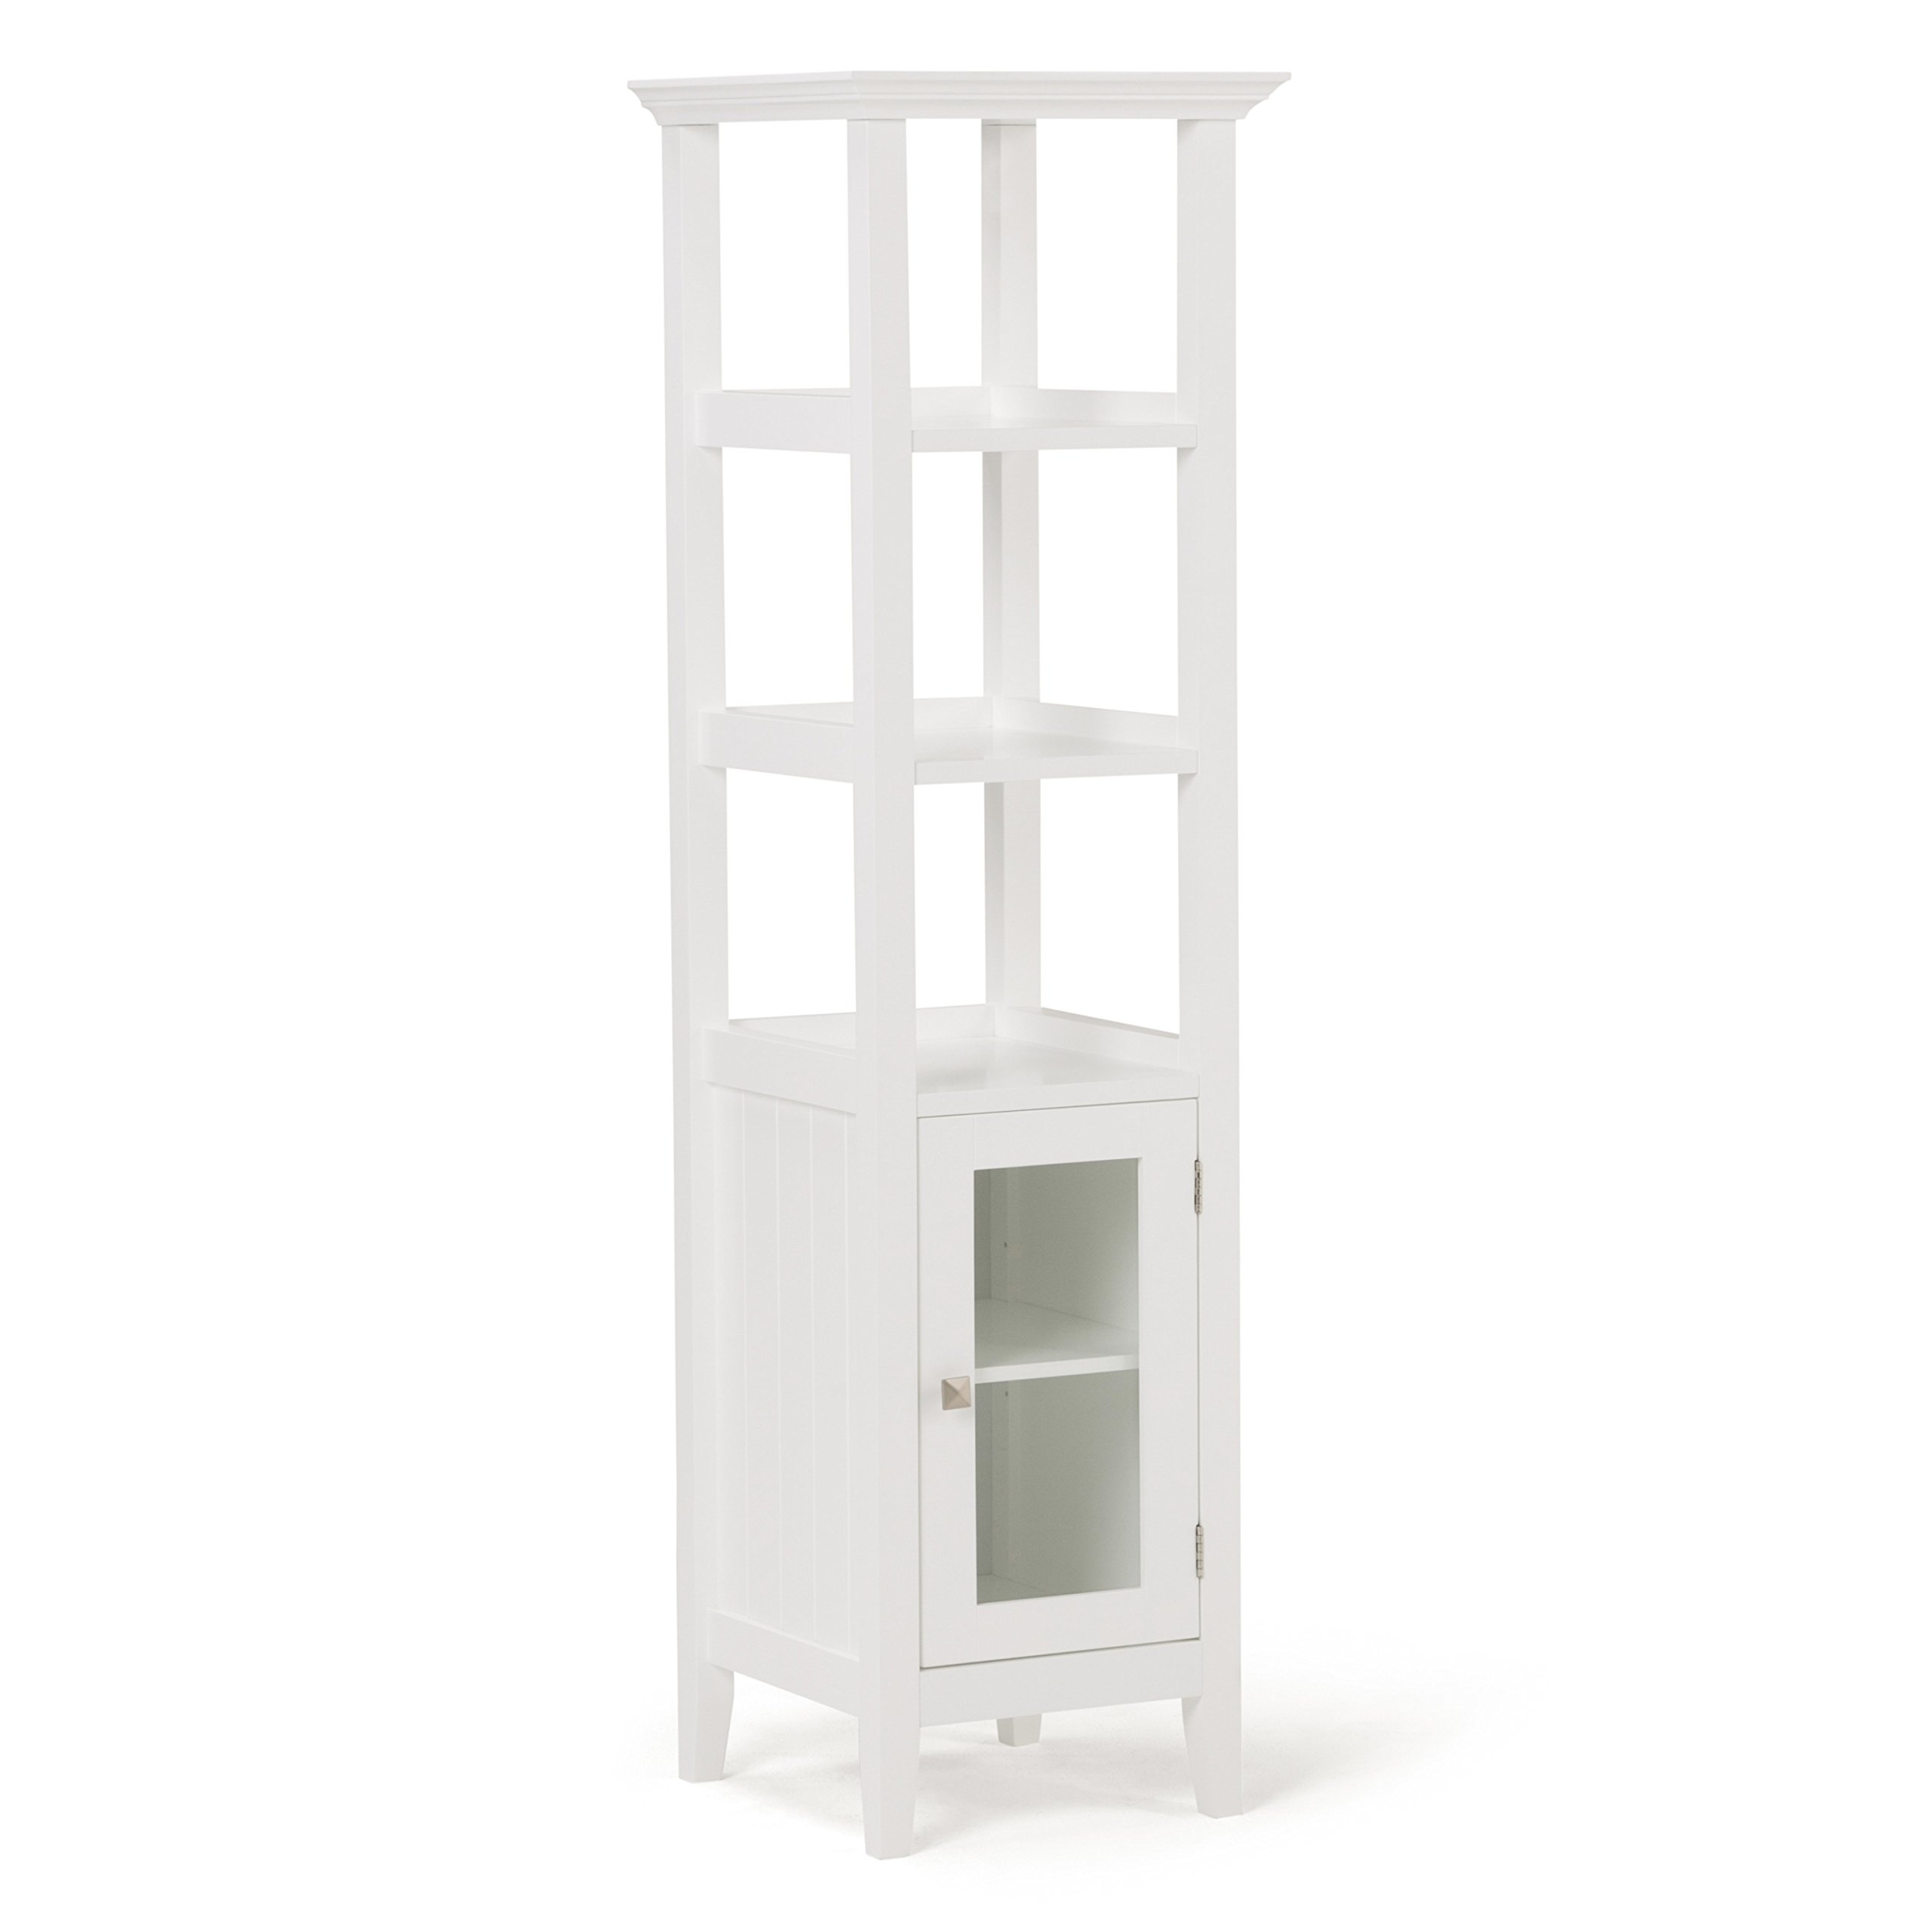 Simpli Home Acadian Bath Storage Tower, White